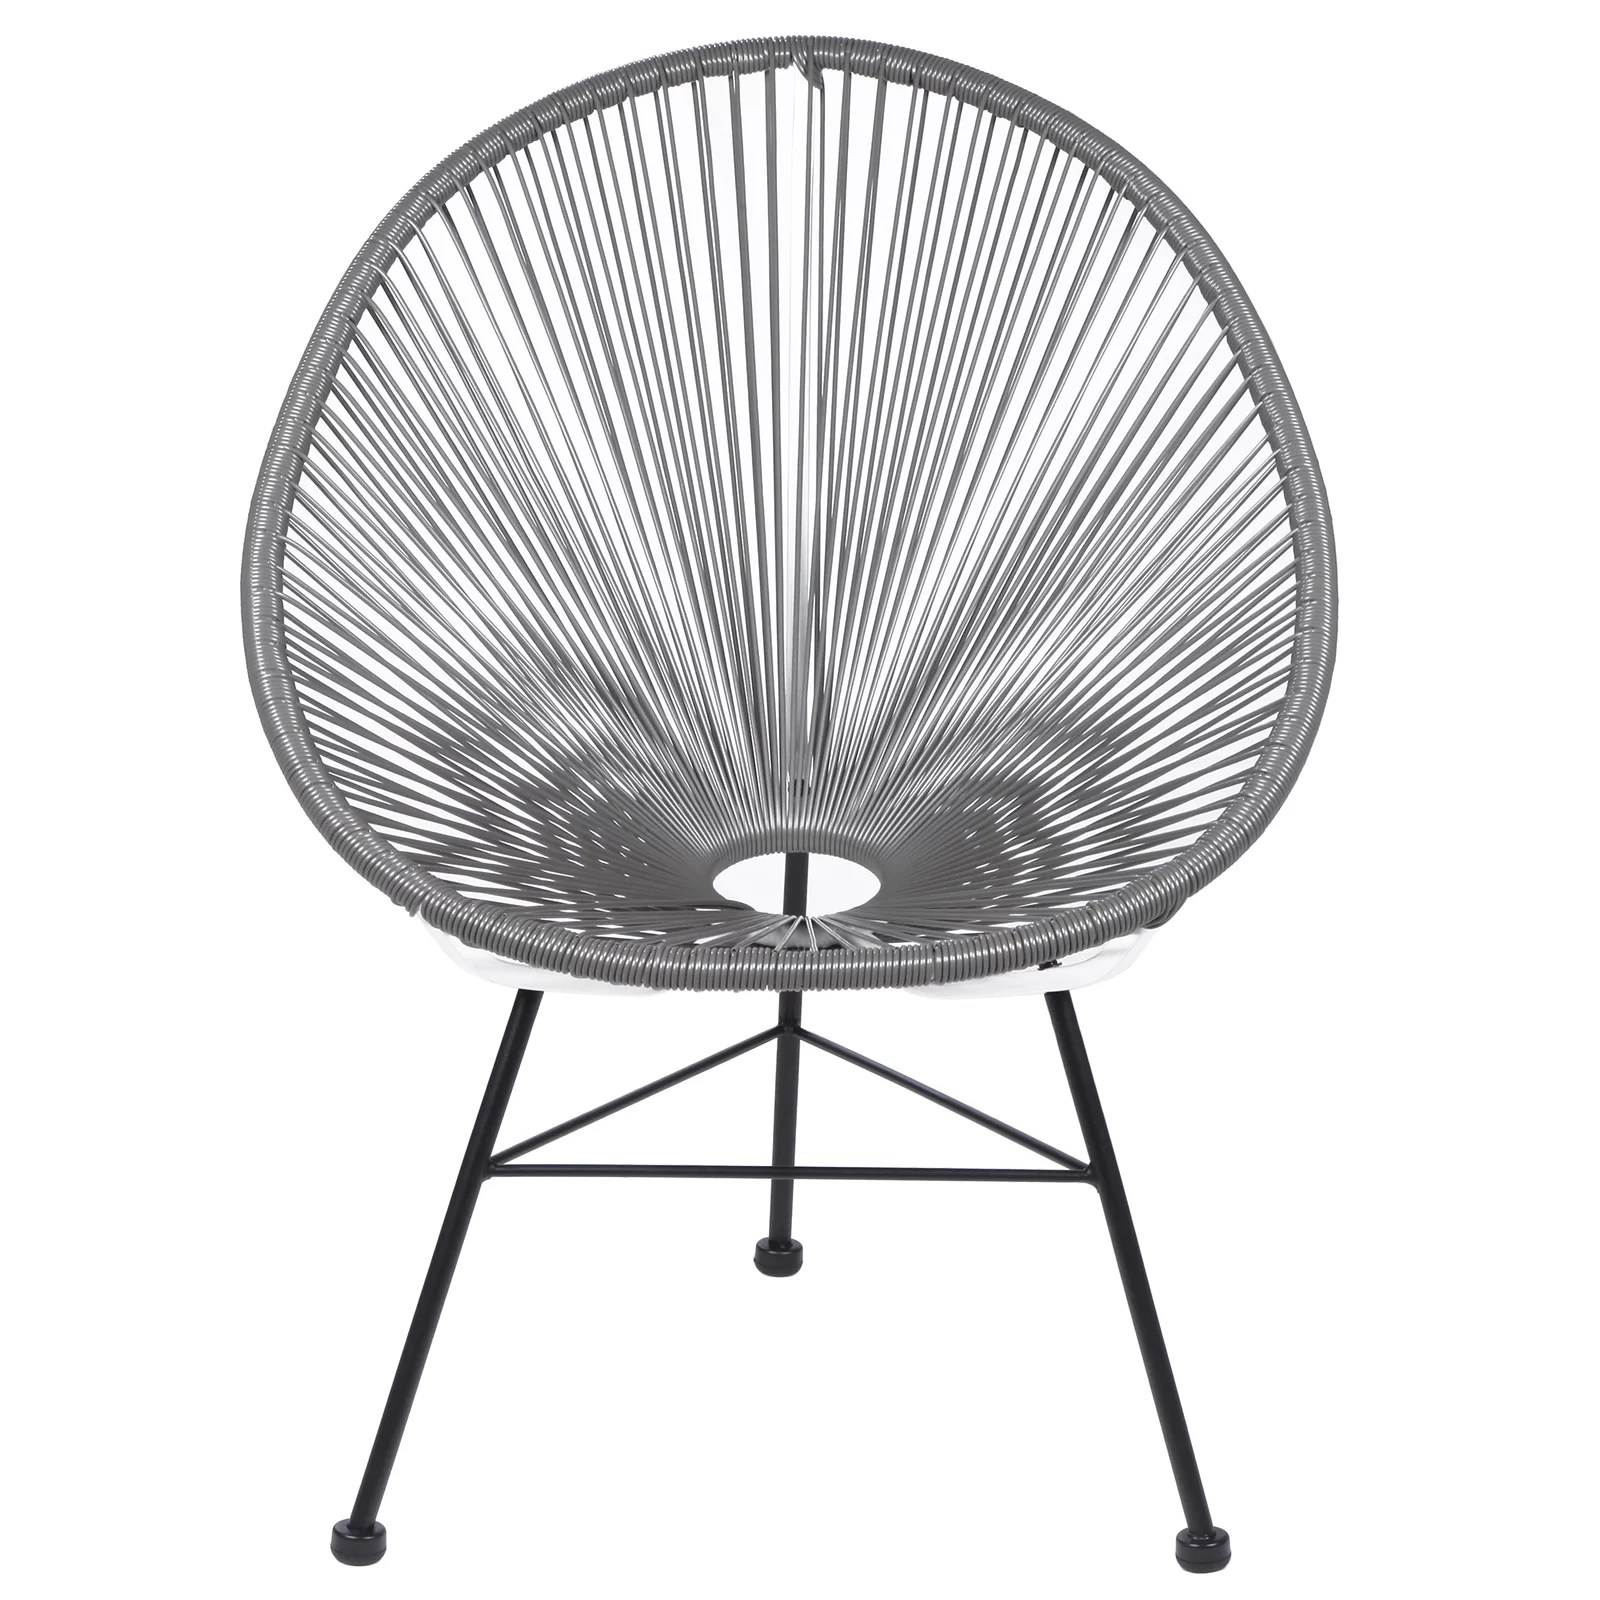 Acapulco Lounge Chair Polivaz Acapulco Wire Basket Lounge Chair Indoor Outdoor